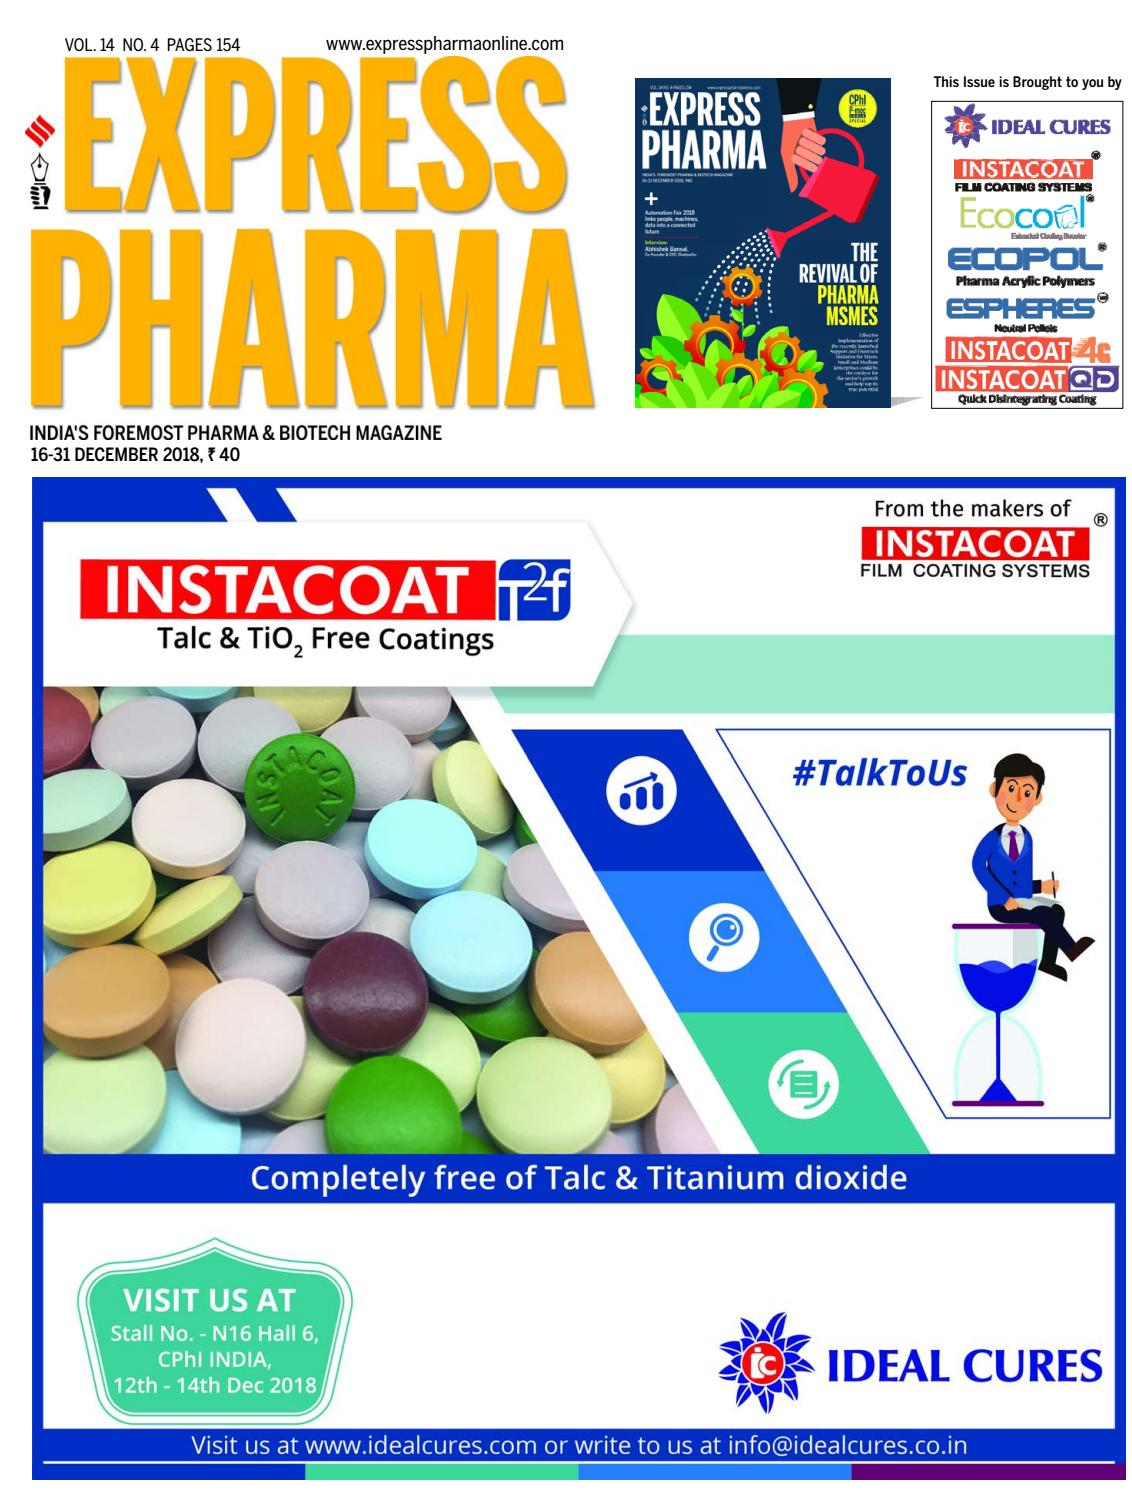 Express Pharma (Vol 14, No 4) December 16-31, 2018 by Indian